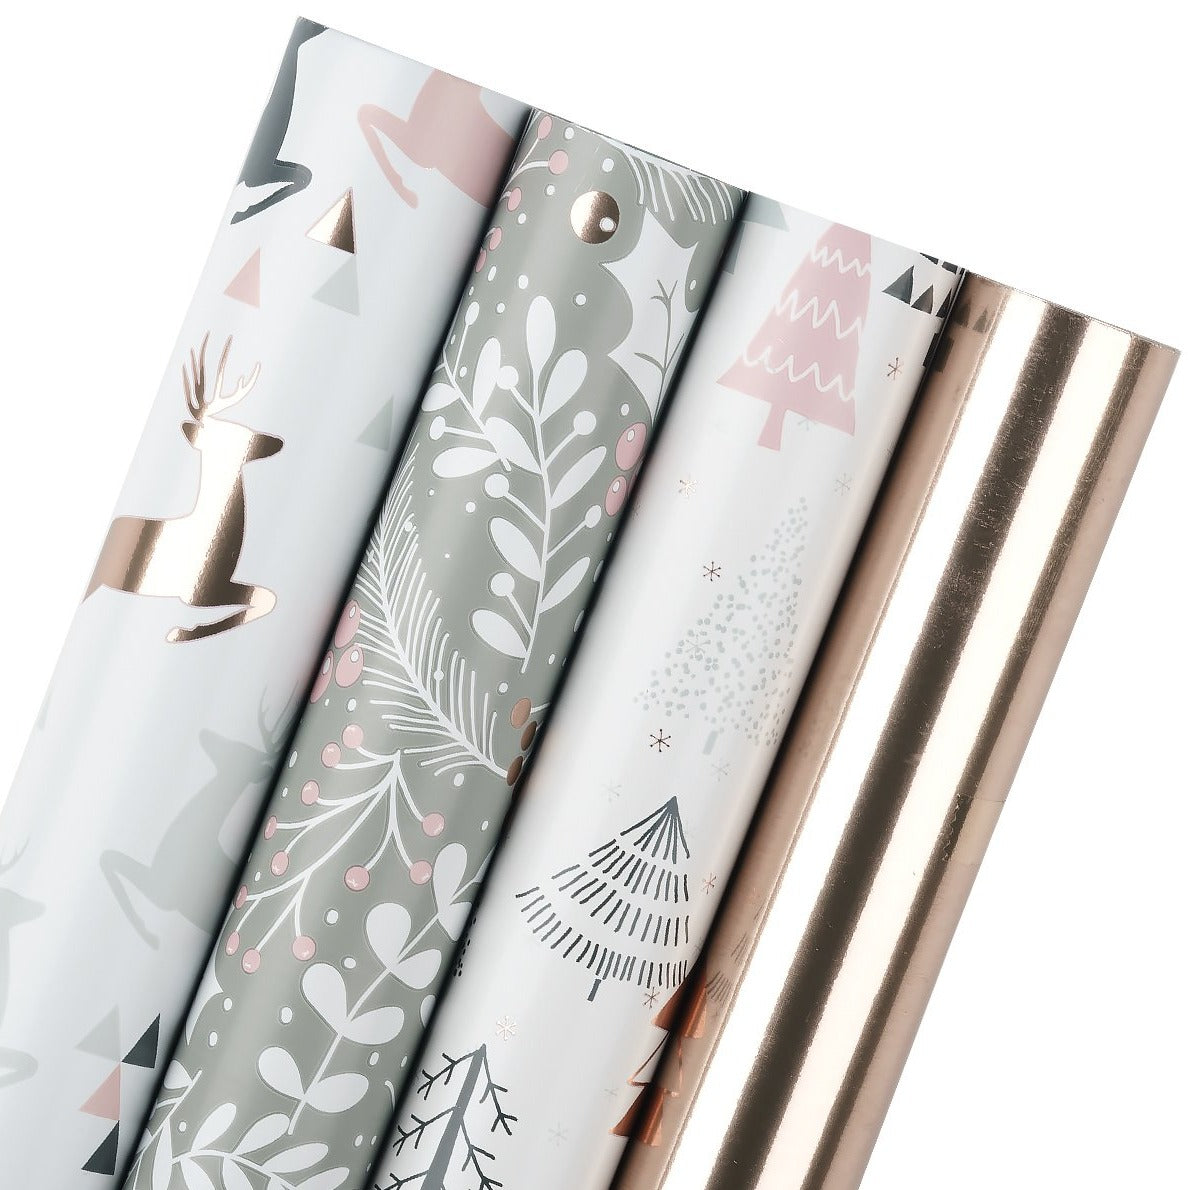 Wrapaholic-Rose-Gold-and- Grey-Holiday-Design-with-Metallic-Foil-Shine-Christmas-Gift-Wrapping-Paper-Roll-4 Rolls-1